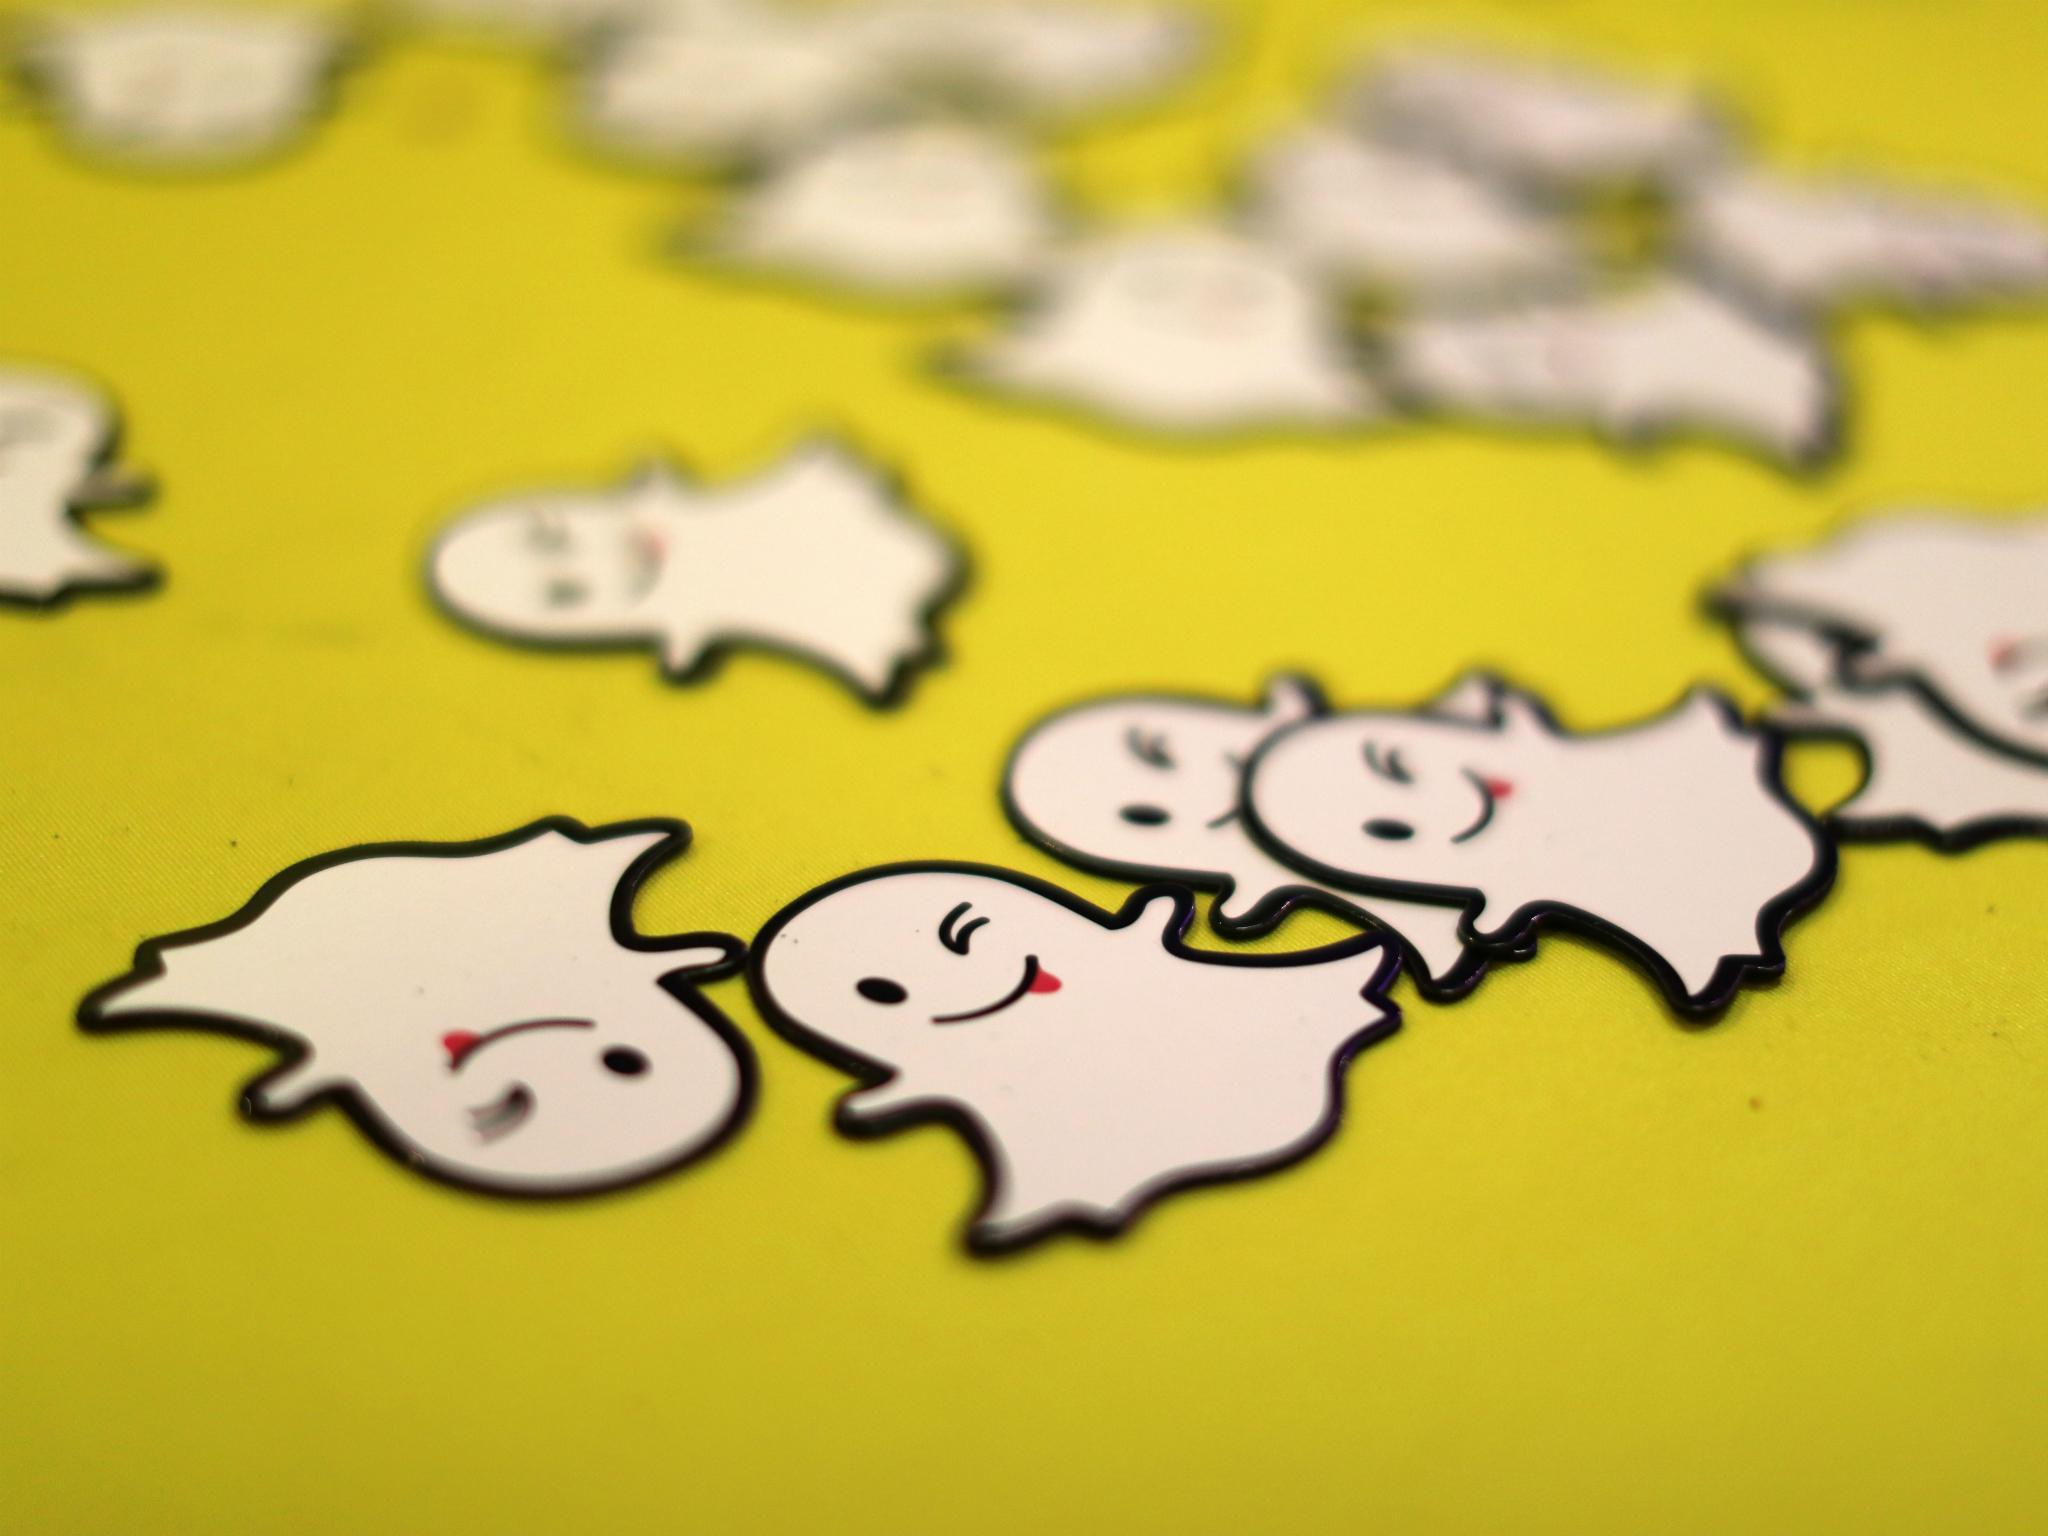 BUT WHY SNAP? Snapchat new update attracts fierce criticism